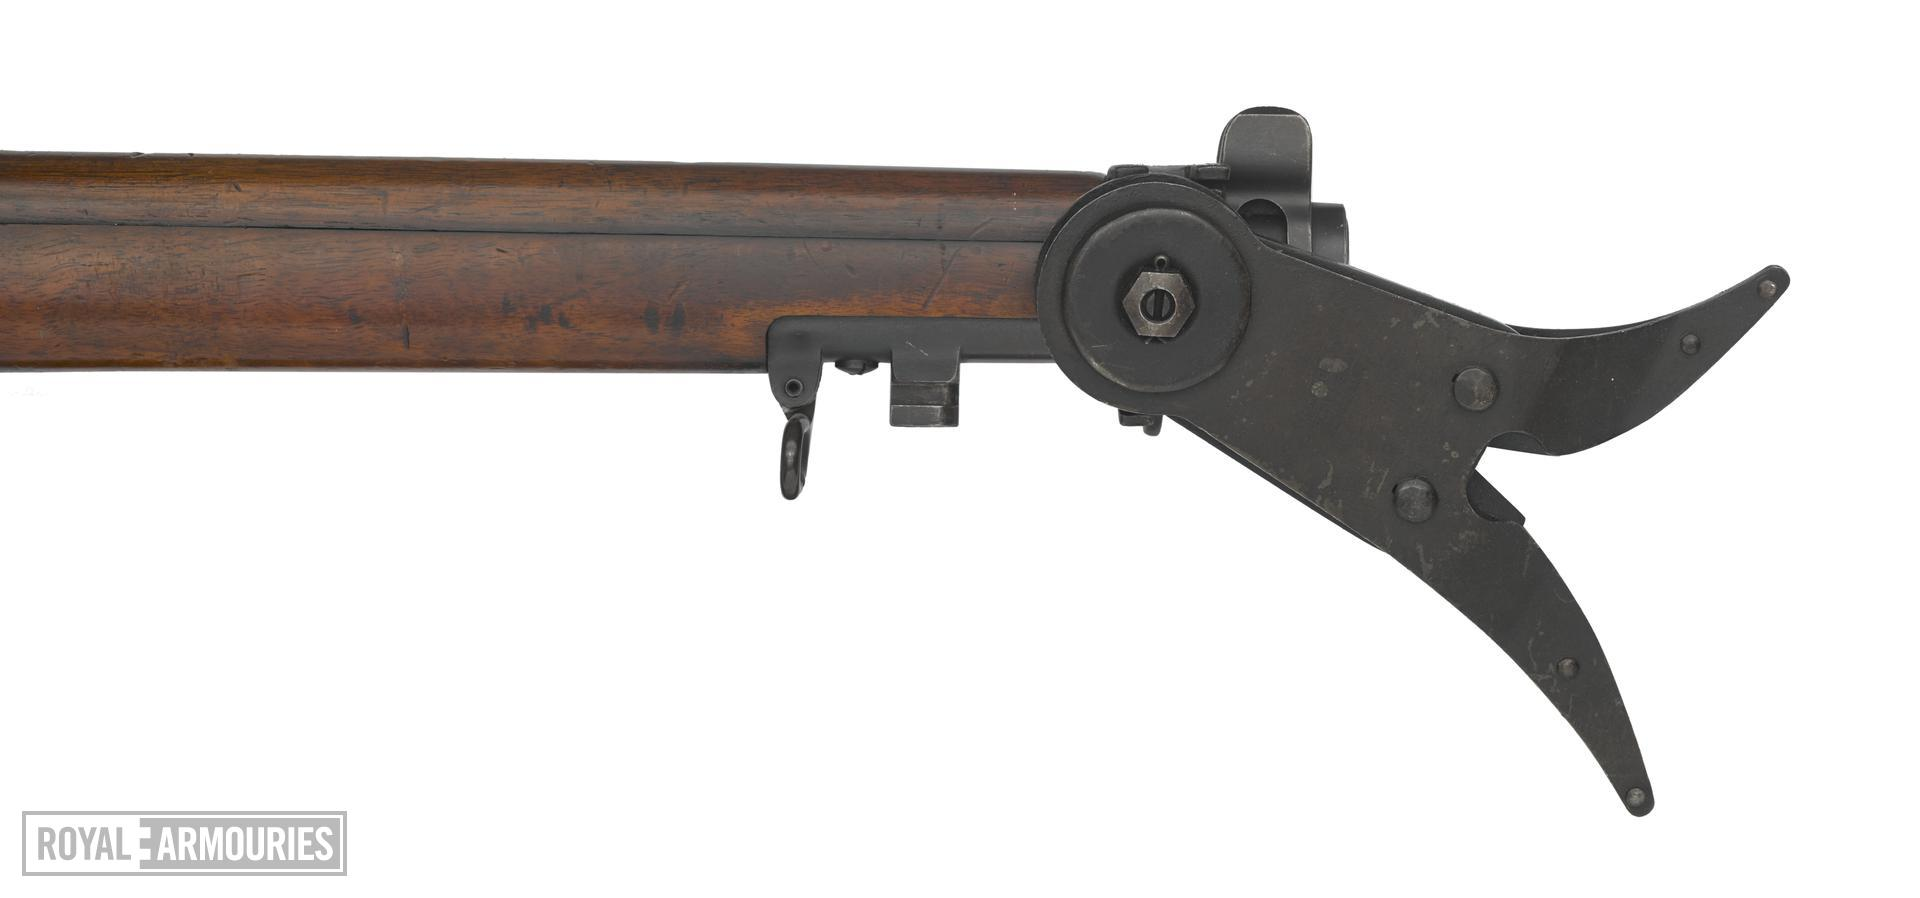 Short Magazine Lee Enfield (SMLE) centrefire bolt action rifle with Wire Cutter No. 2, British, dated 1914.